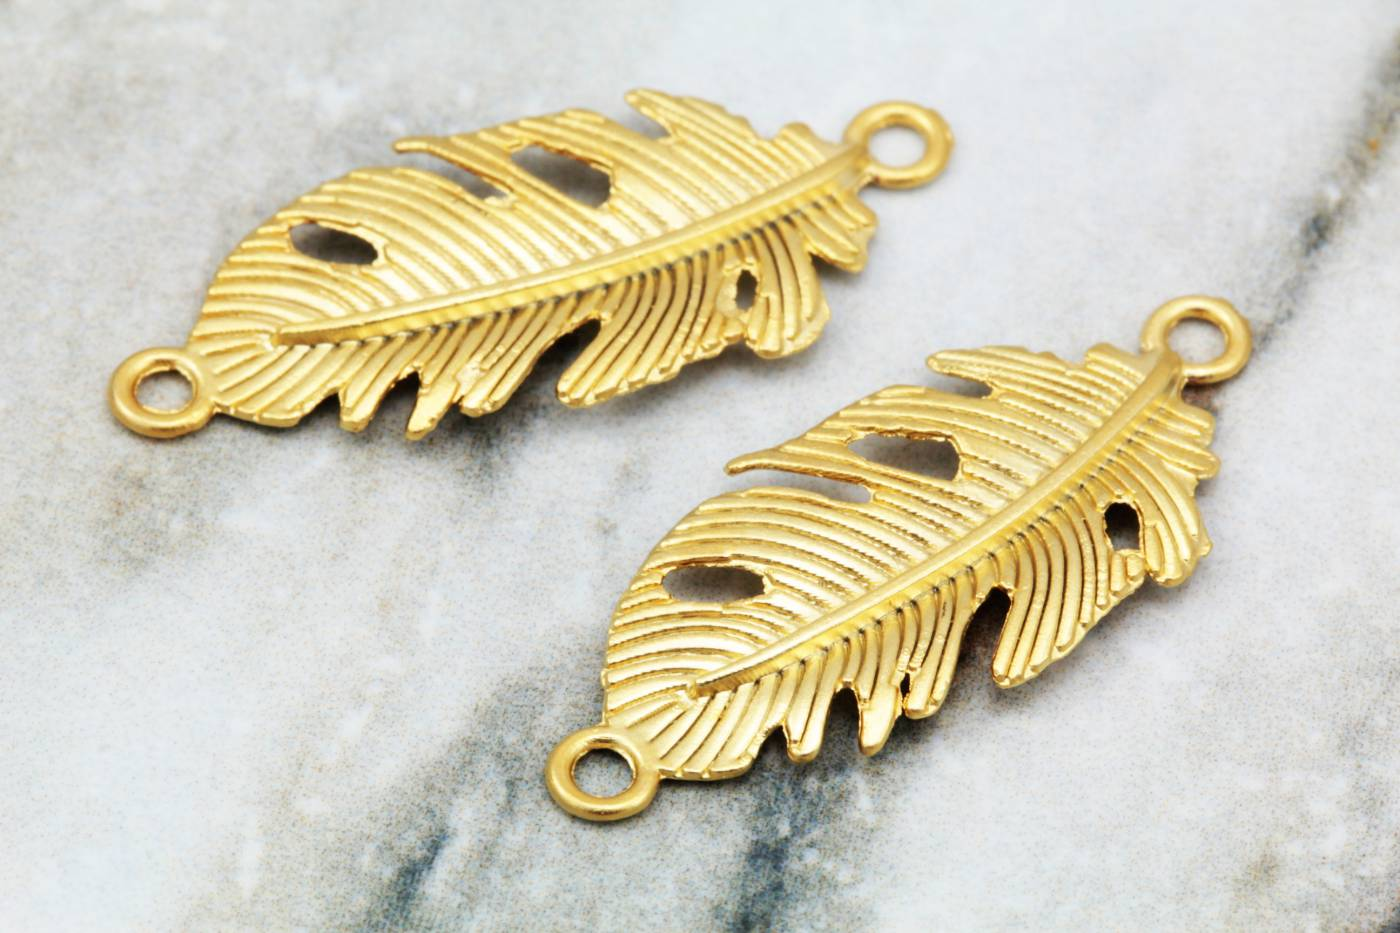 gold-metal-tiny-leaf-pendant-charms.jpg